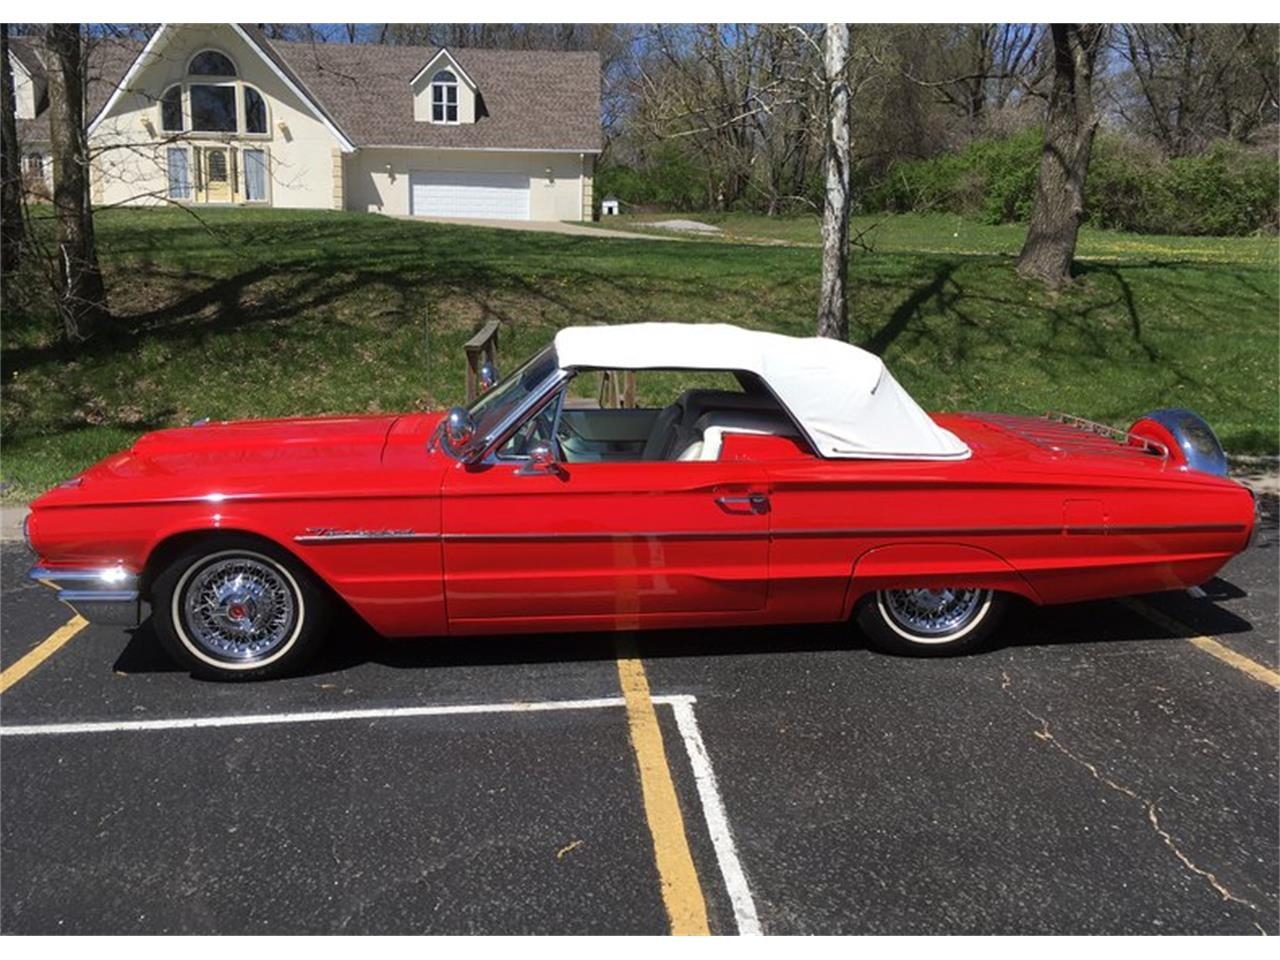 Large Picture of 1964 Ford Thunderbird Auction Vehicle Offered by Leake Auction Company - Q0VV